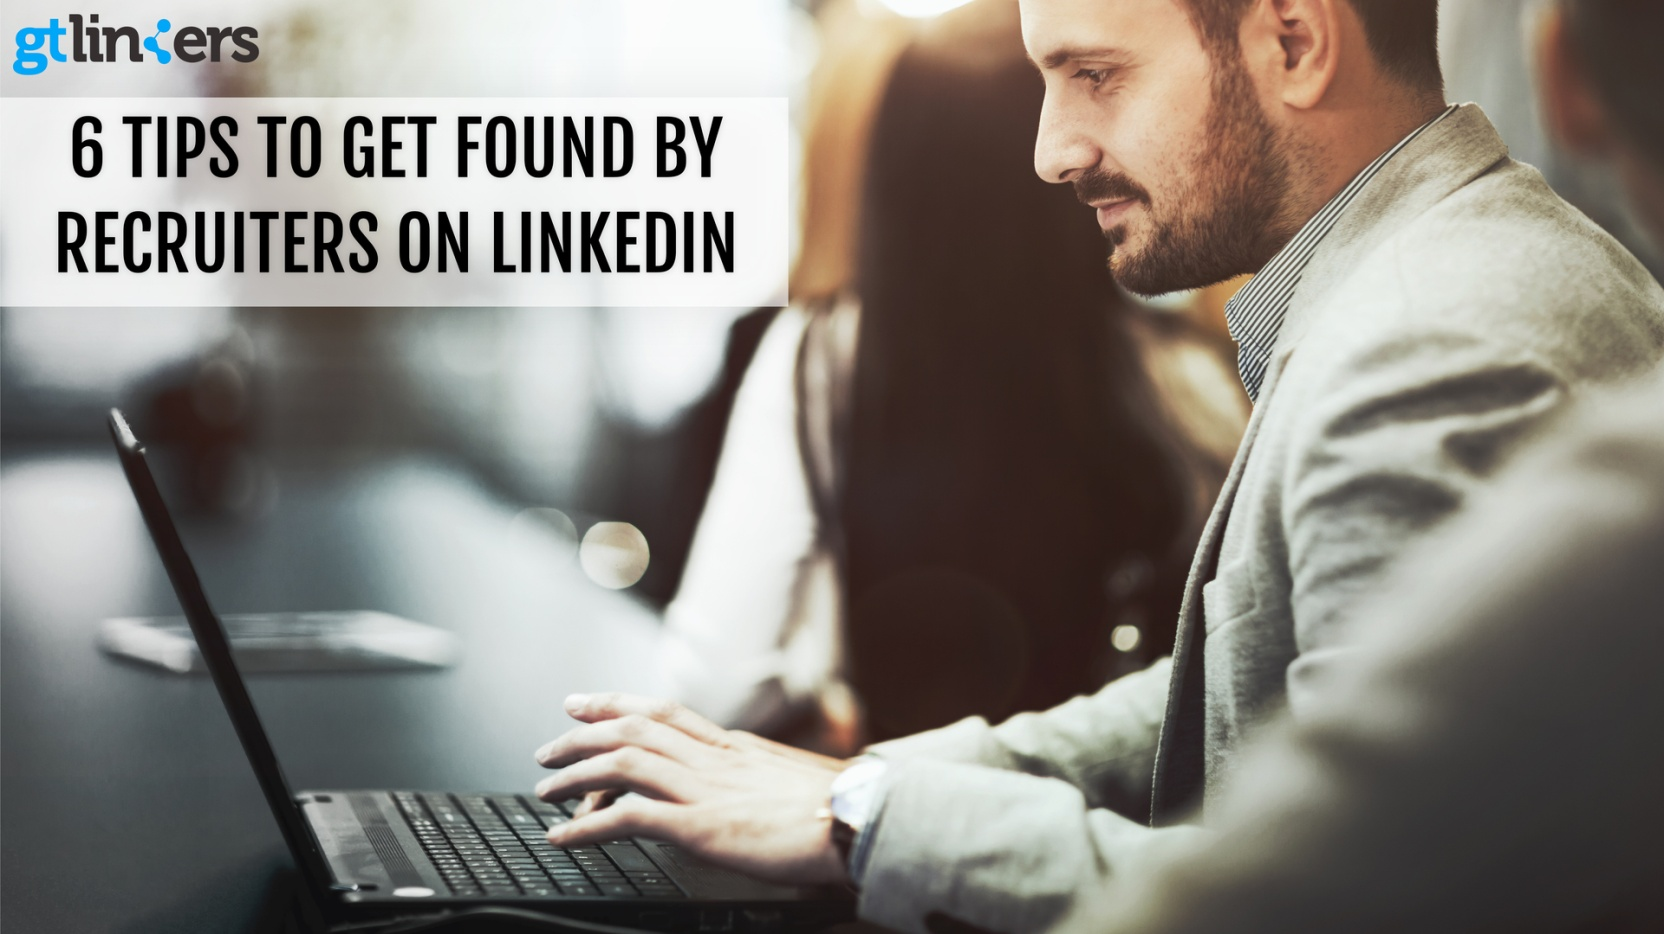 gt linkers 6 tips to get found on linkedin